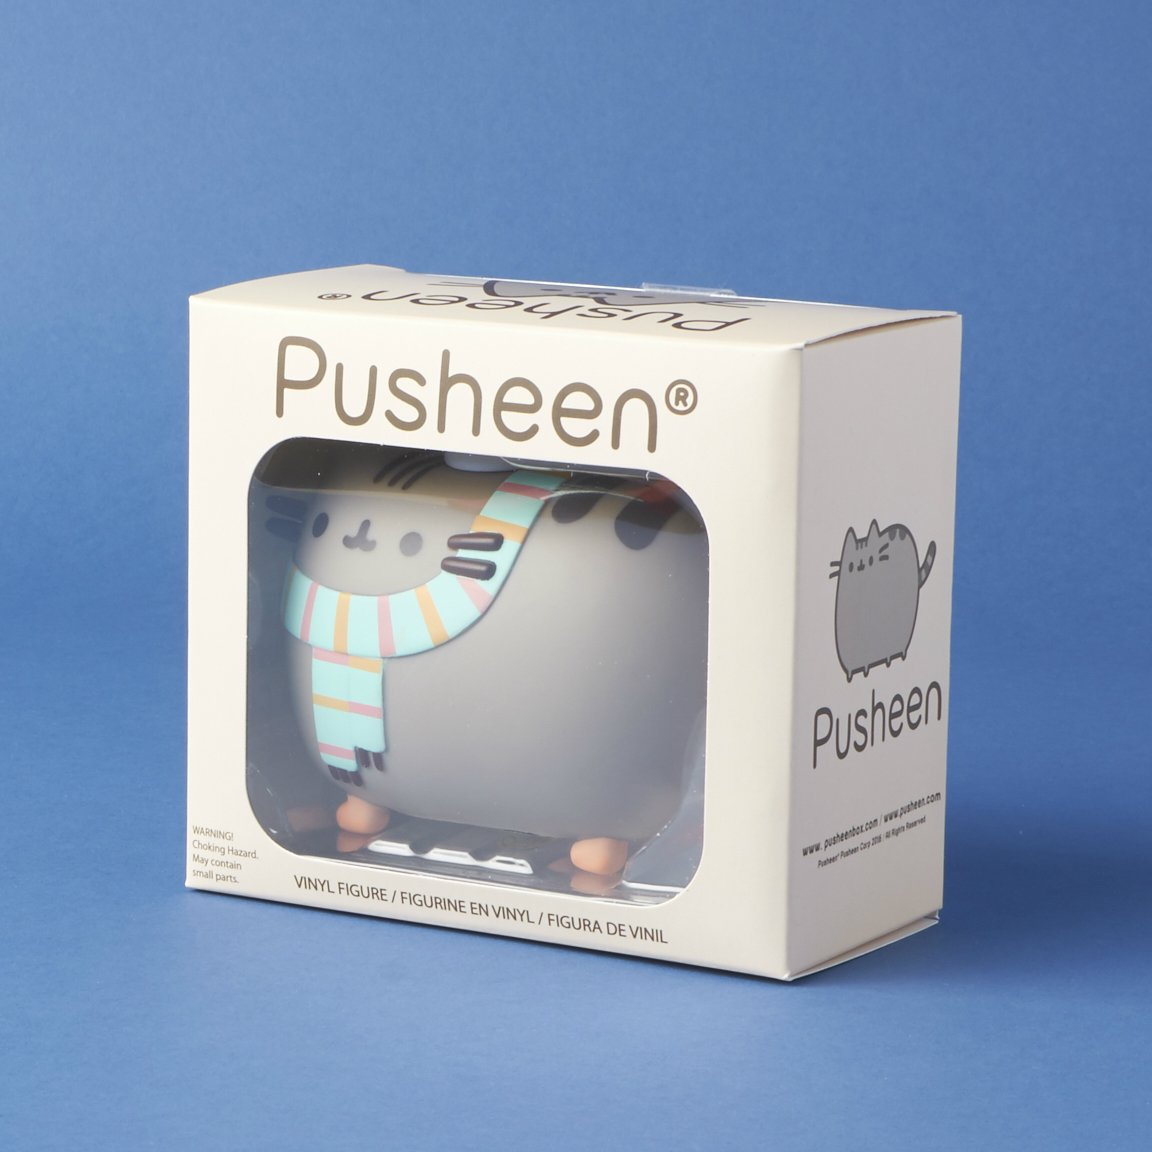 pusheen-box-winter-2016-0018